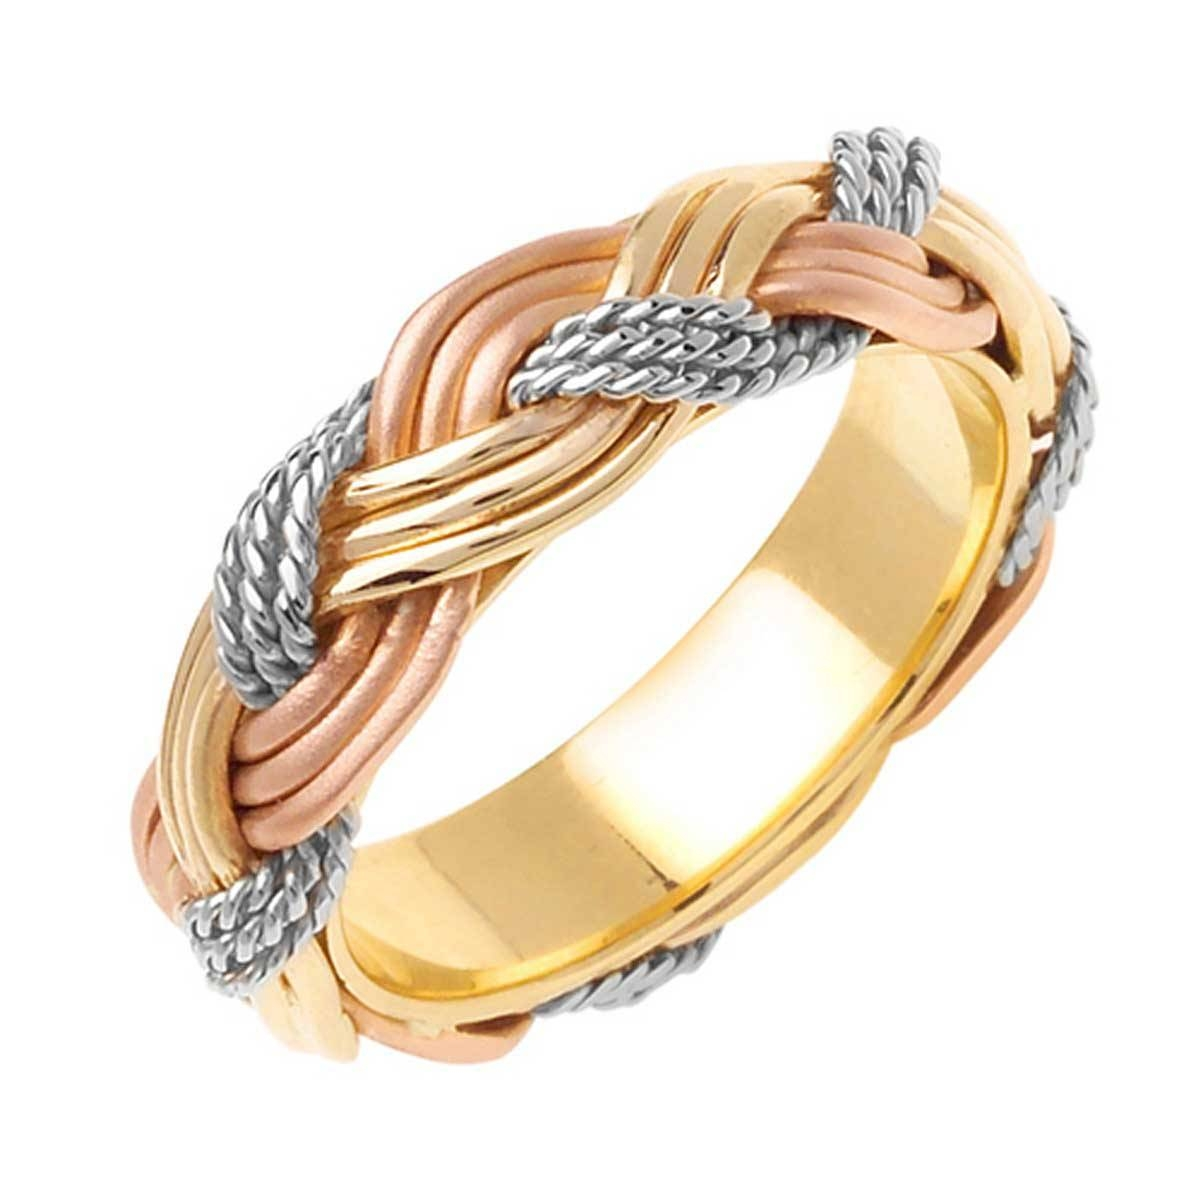 14K Tri Color Gold African Braid Band 6Mm  3002747 – Shop At Regarding Three Color Braided Wedding Bands (View 4 of 15)